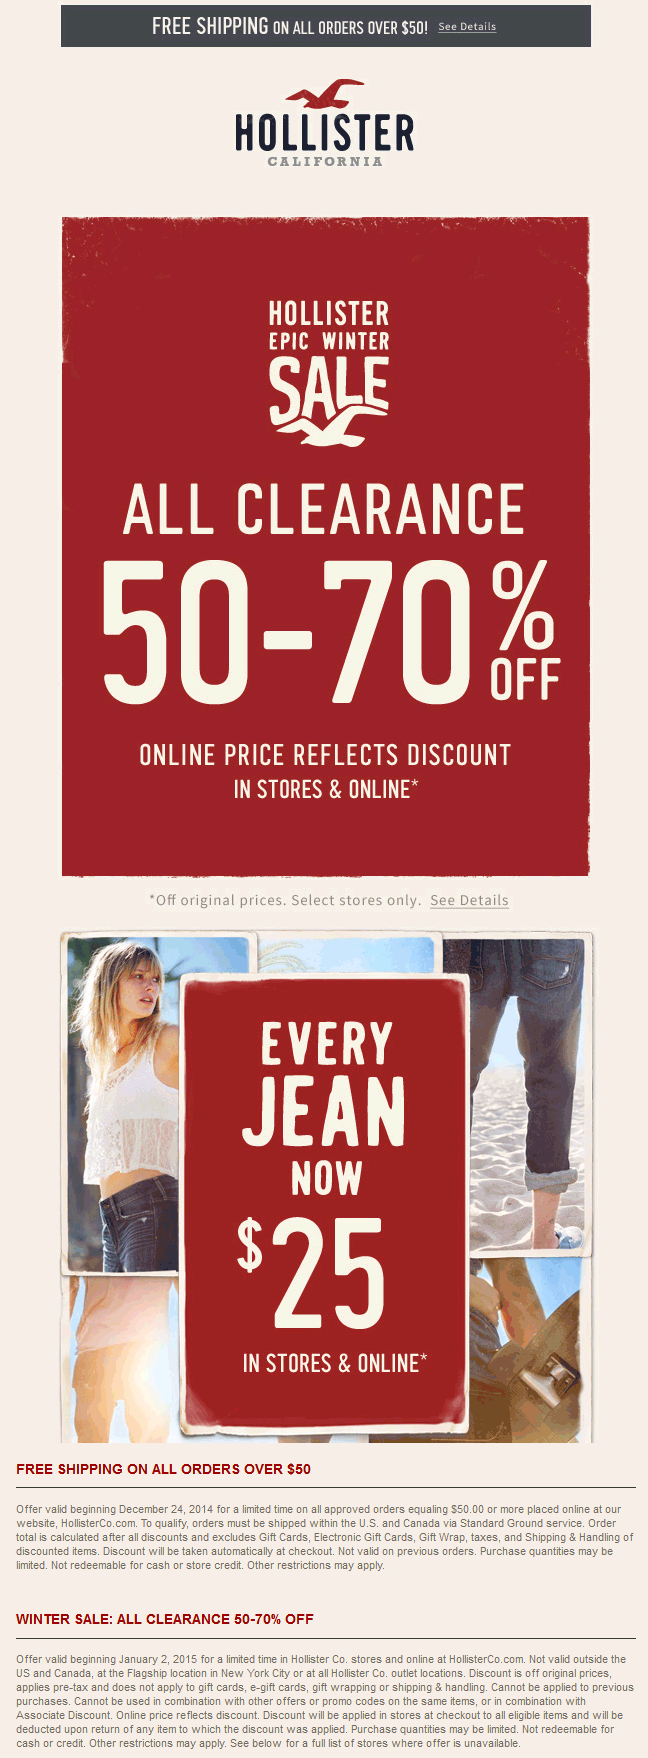 Hollister Coupon June 2017 Extra 50-70% off clearance at Hollister, ditto online